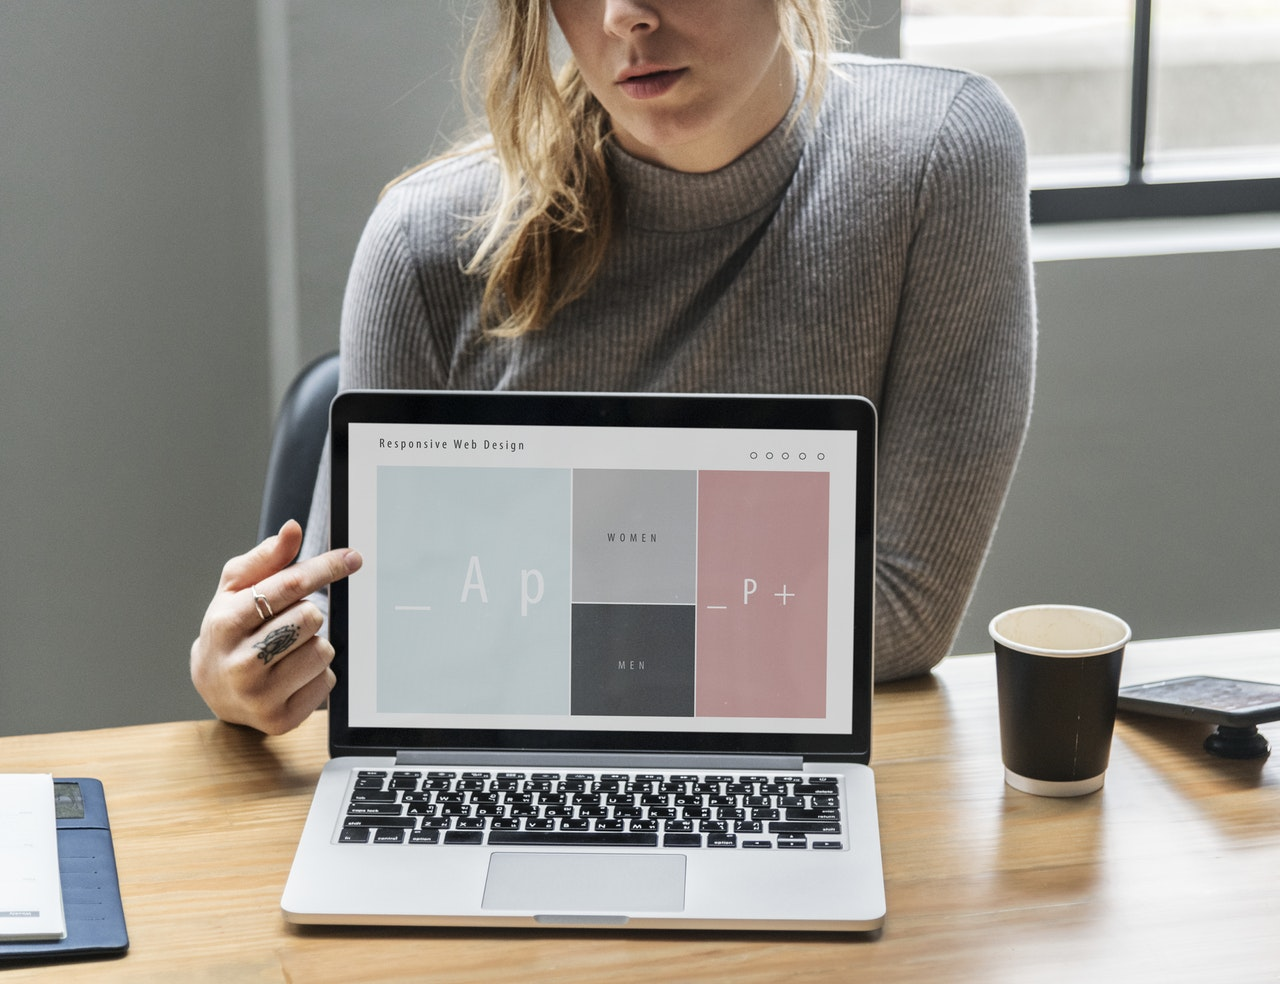 Step up Your UI/UX Game | 6 Tips to Make your Web Design Shine in 2019